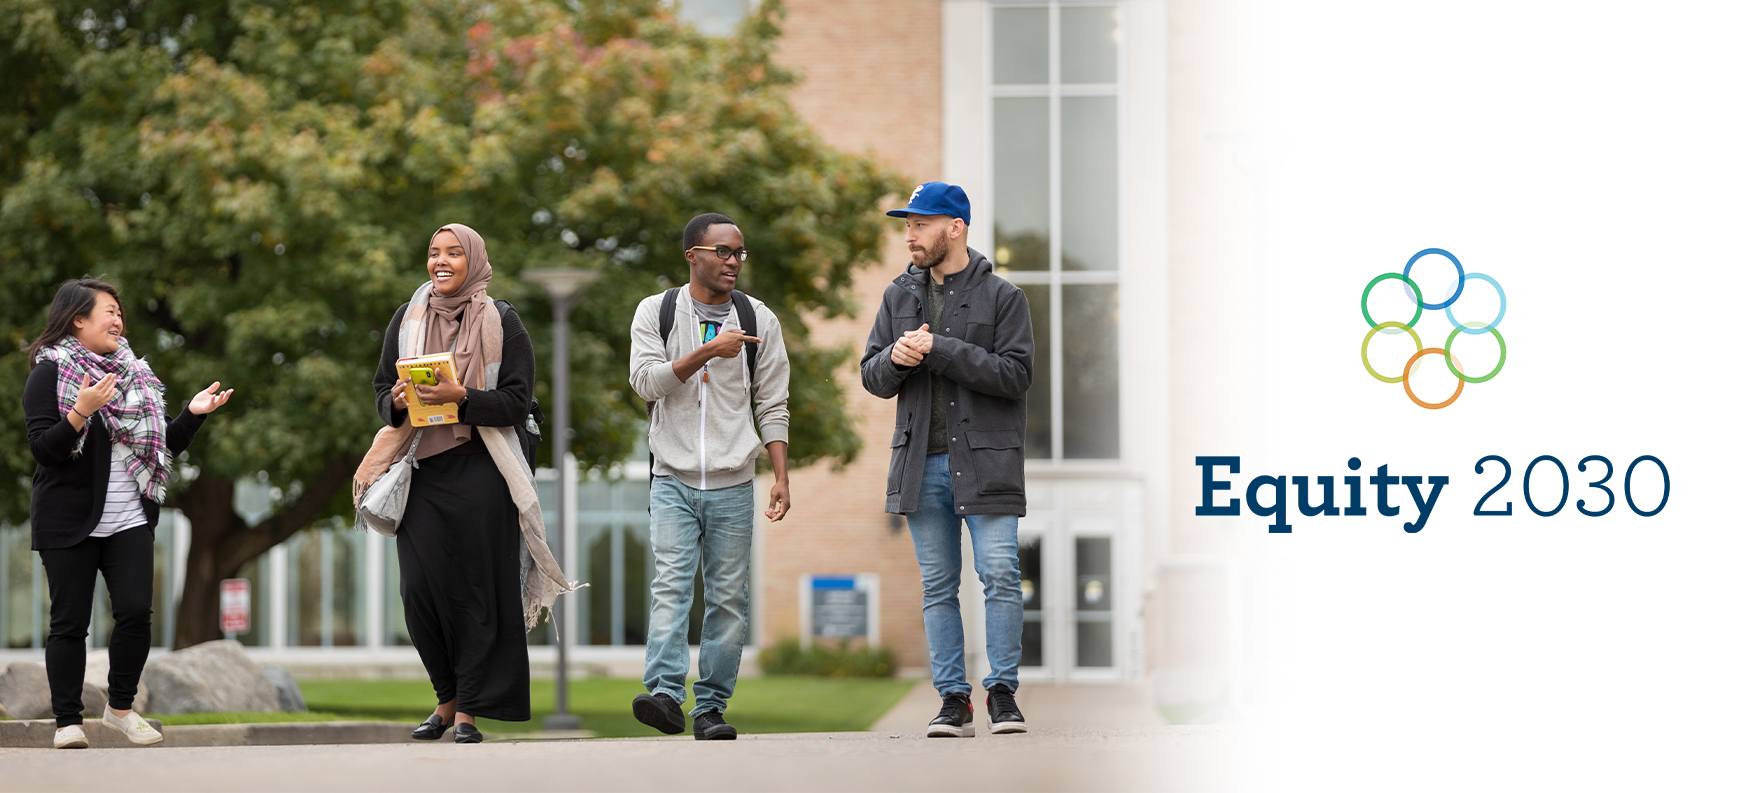 Four students walking together outside on campus